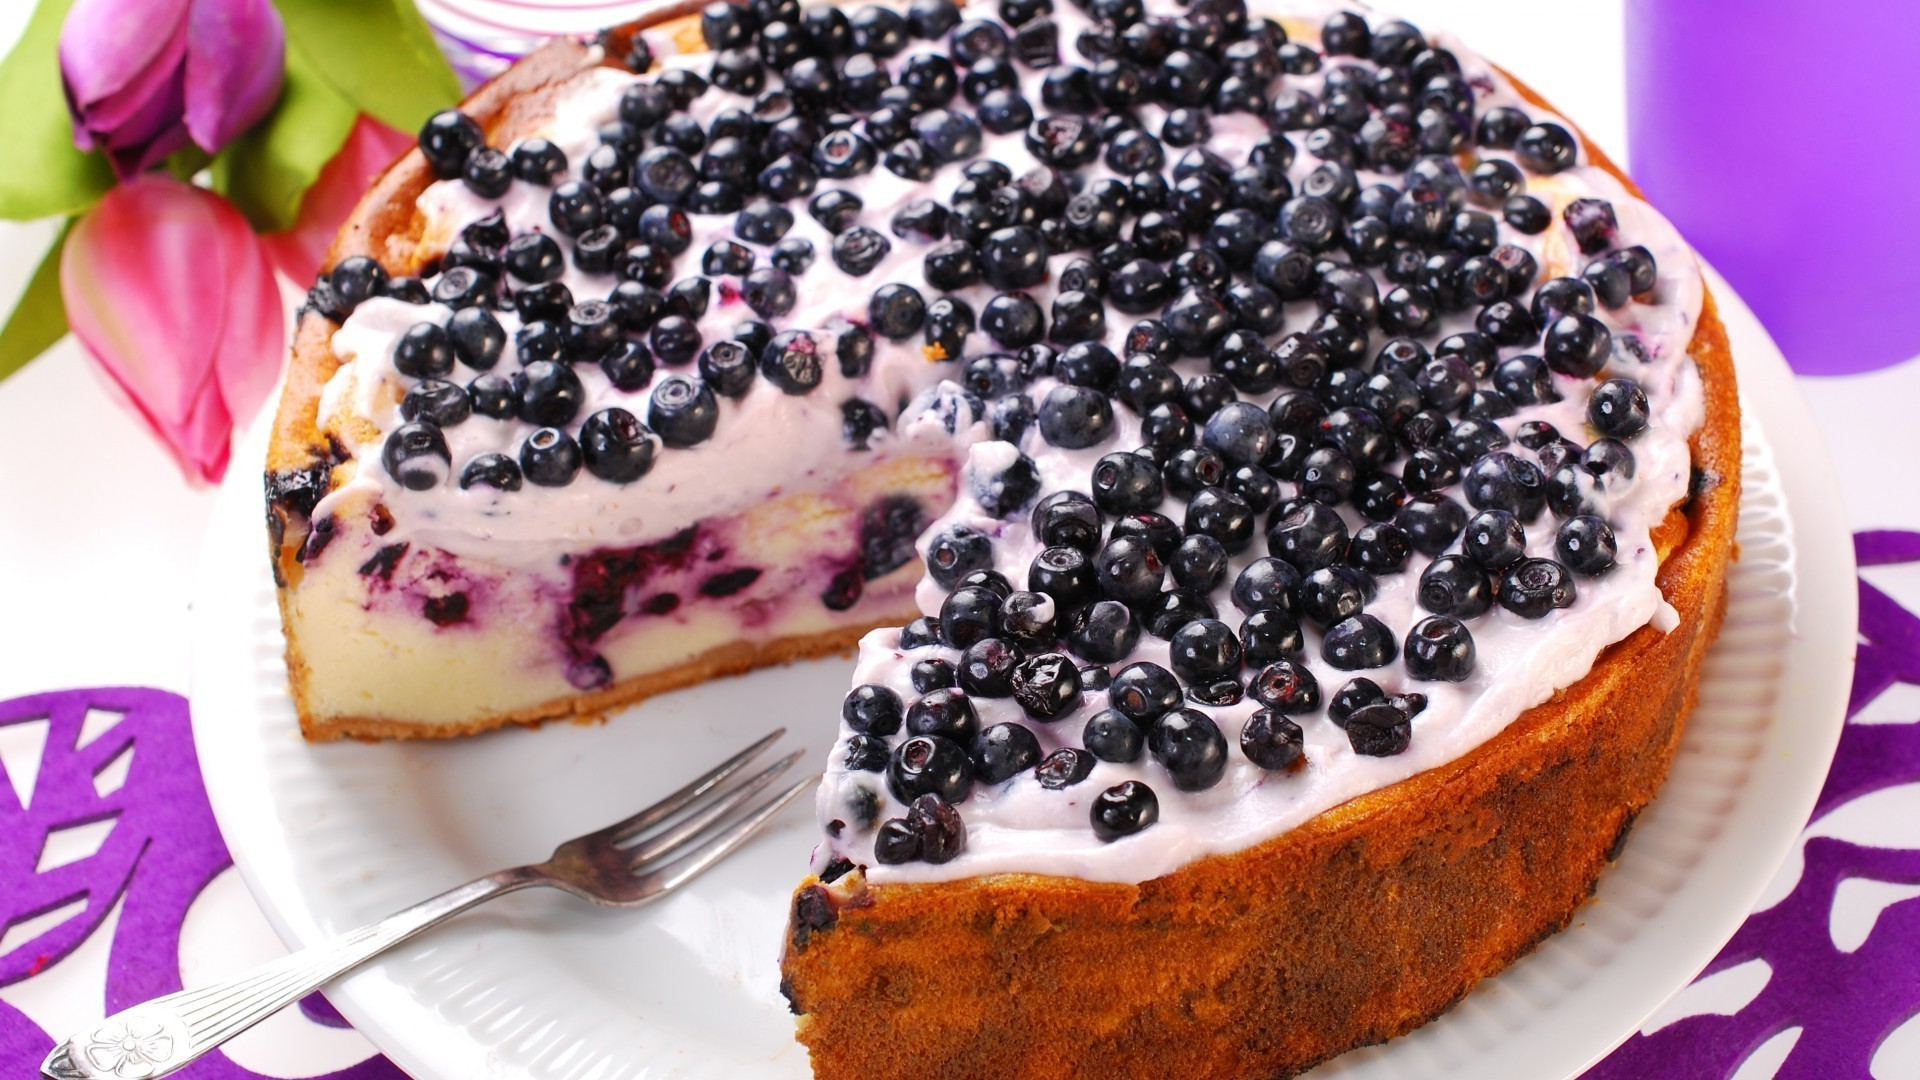 The blueberry cake